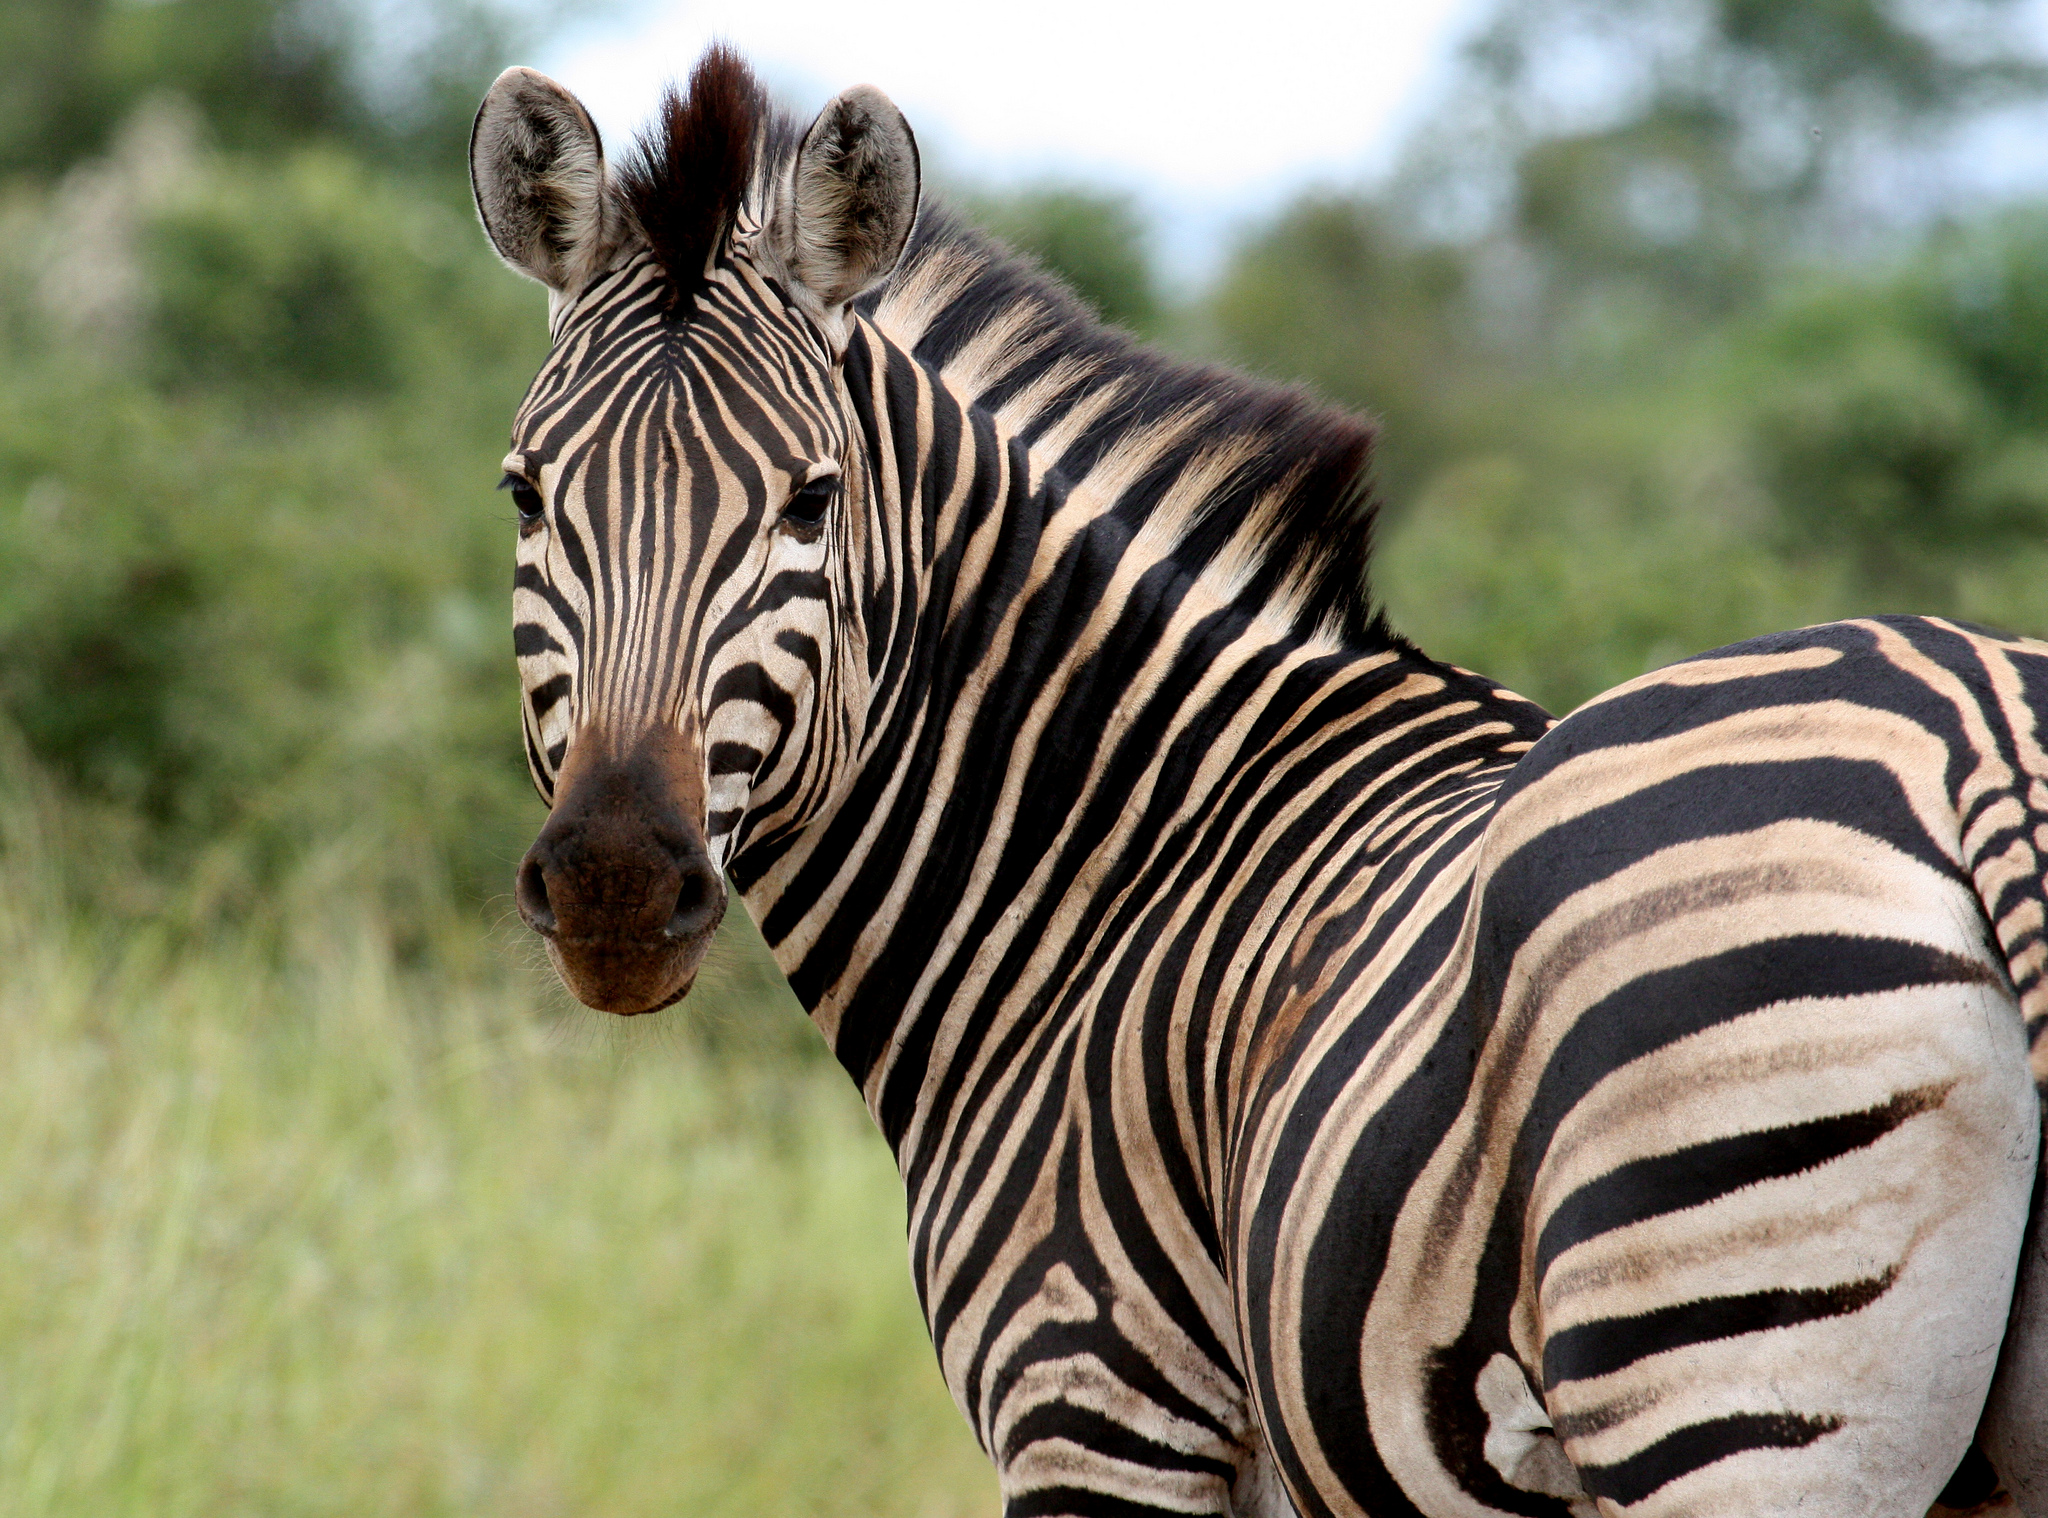 """Zebra Kruger National Park"" by Barbara Eckstein via Flickr Creative Commons"